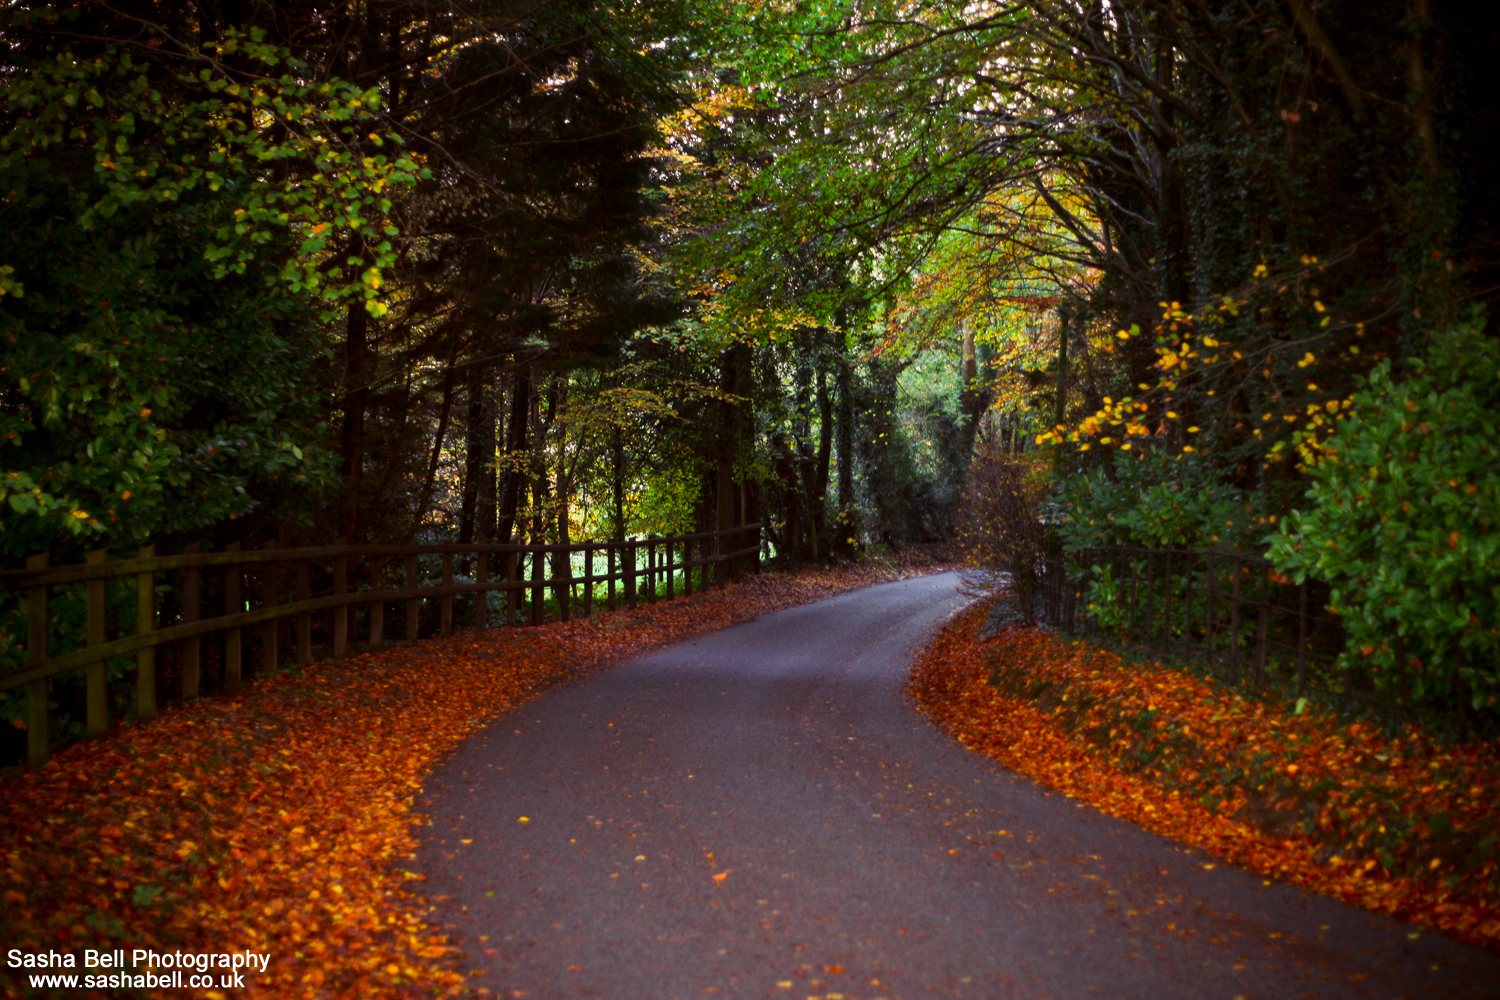 The Autumn Road – #49 of #50